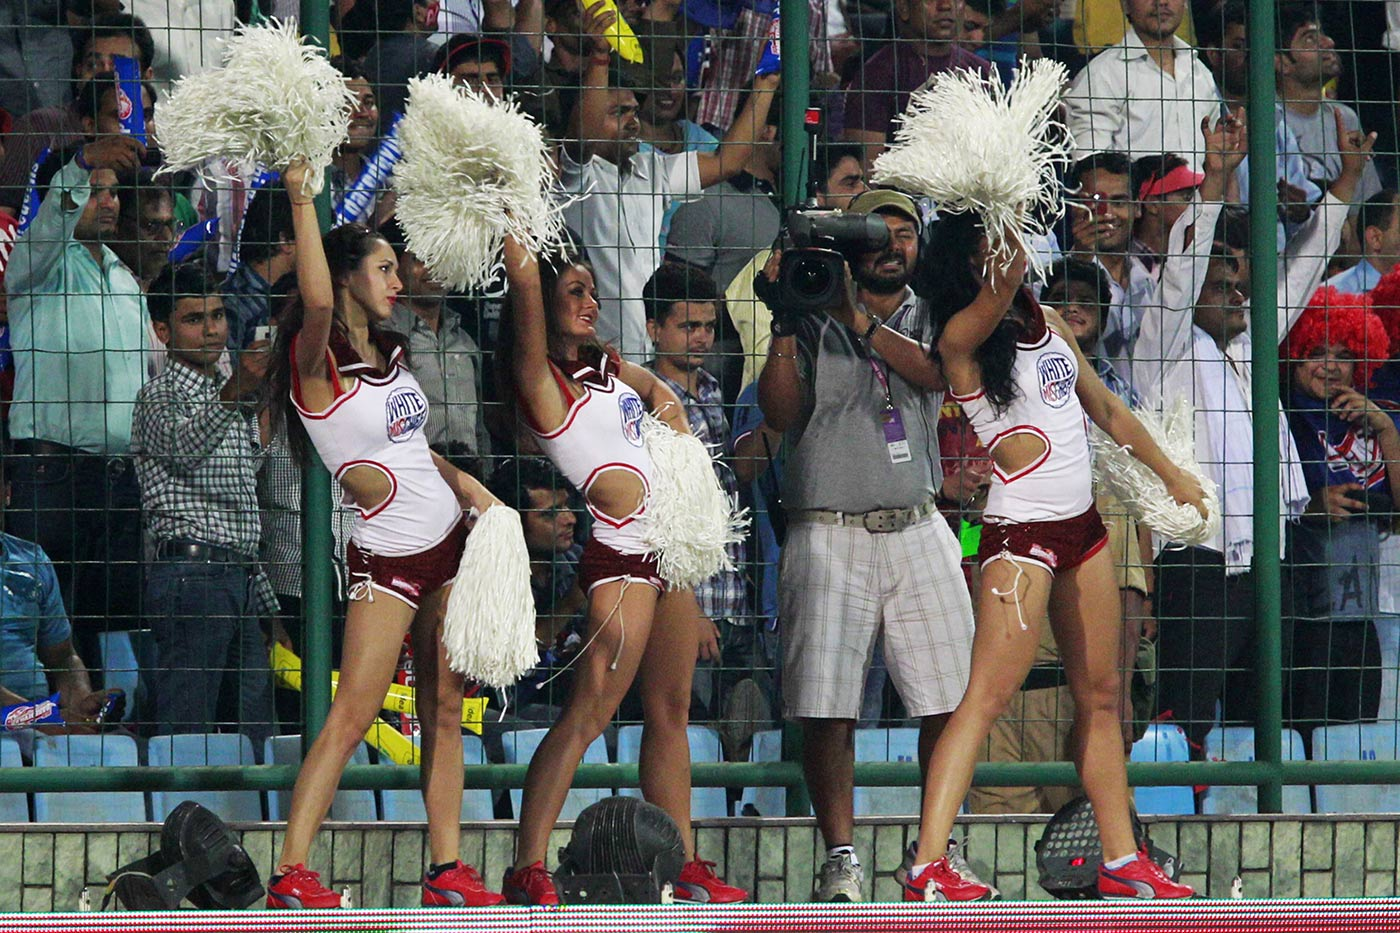 Where's my phone y'all? In the IPL's early years, its cheerleaders strutted their stuff against a backdrop of cameraphone-wielding men